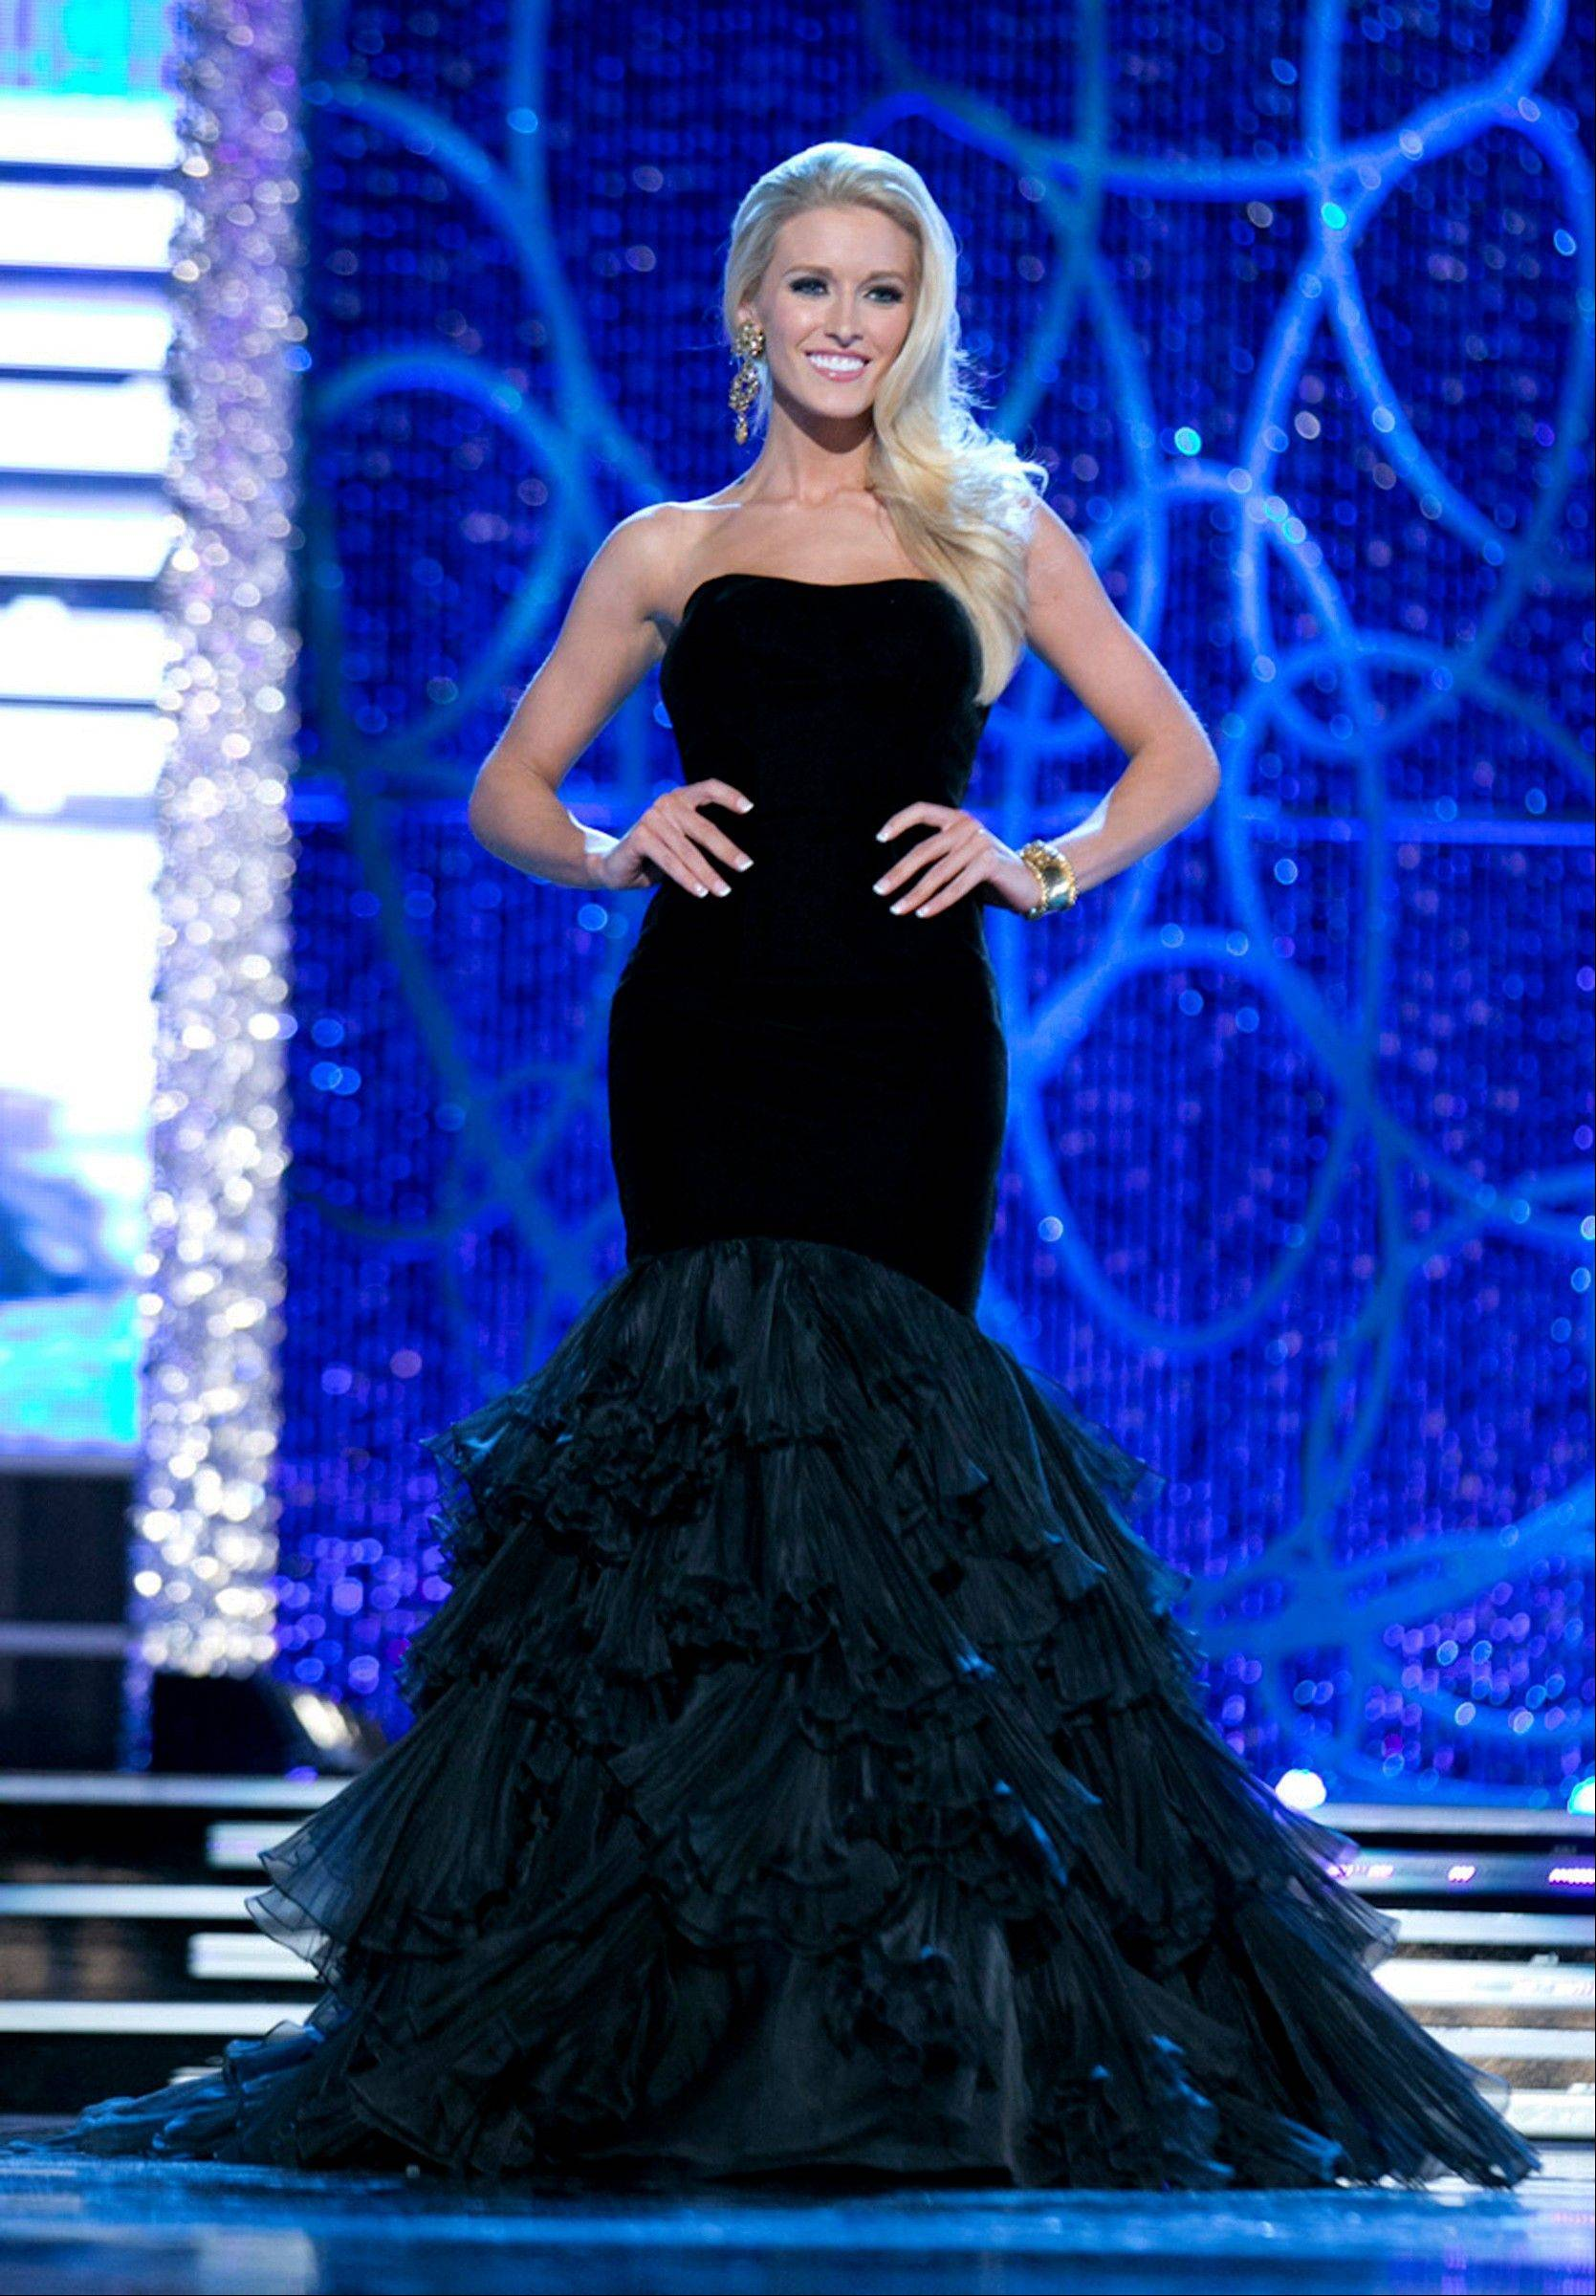 This photo courtesy Miss America Organization shows Miss DC, Allyn Rose, during the Evening Wear portion of preliminary competition at the 2013 Miss America Pageant in Las Vegas, Tuesday, Jan. 8, 2013. Win or lose, Saturday's Miss America competition will be Rose's last pageant. The 24-year-old plans to undergo a double mastectomy after the event as a preventative measure to reduce her chances of developing the disease that killed her mother, grandmother and great aunt.